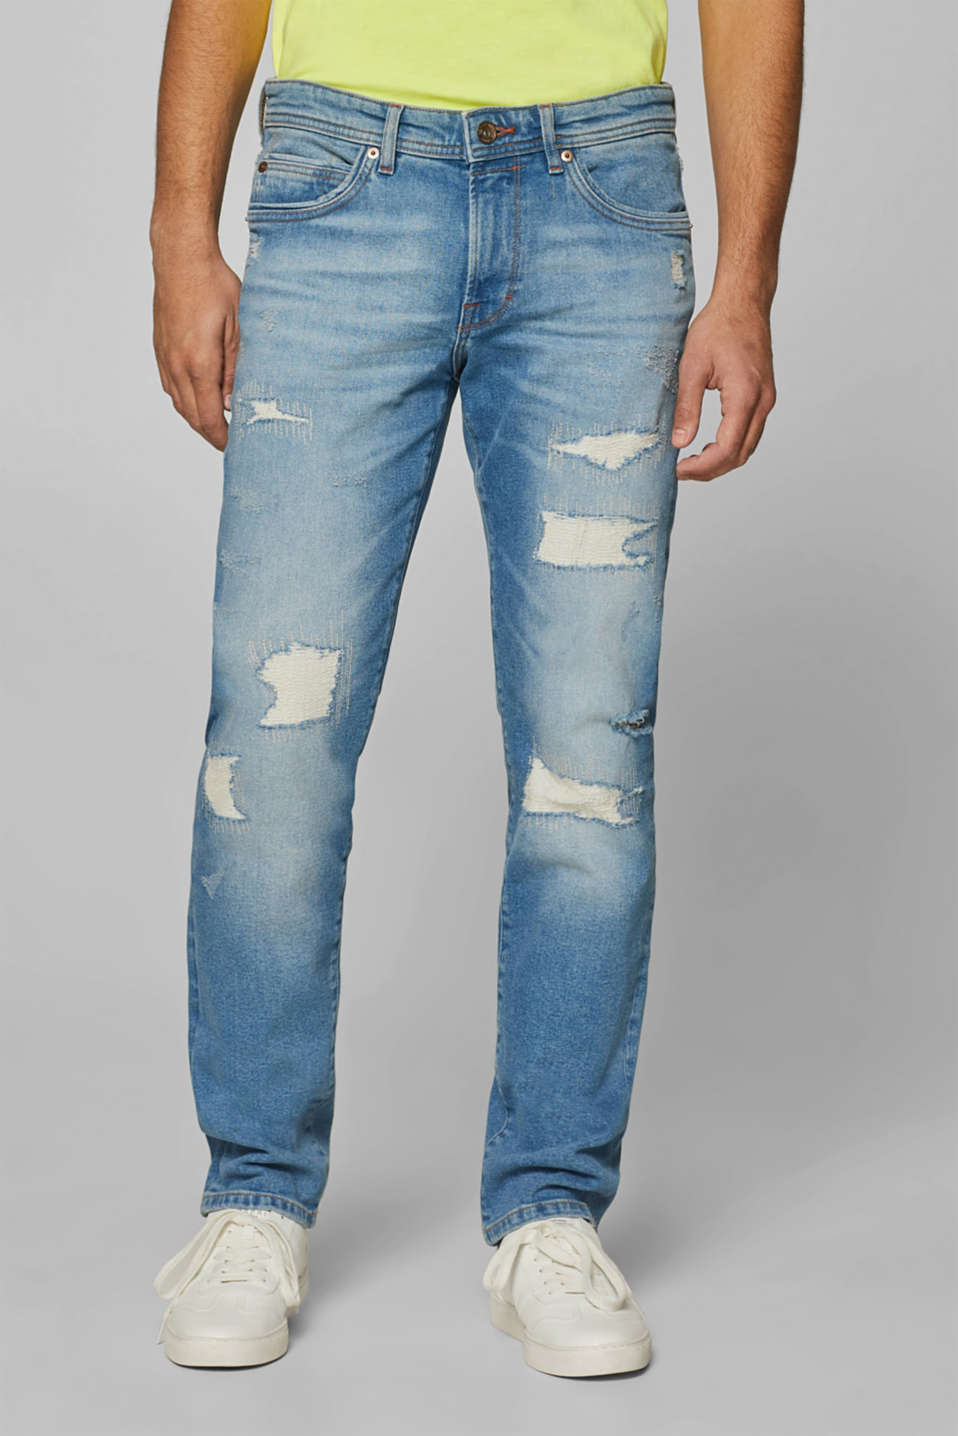 Esprit - Stretchjeans met een destroyed look